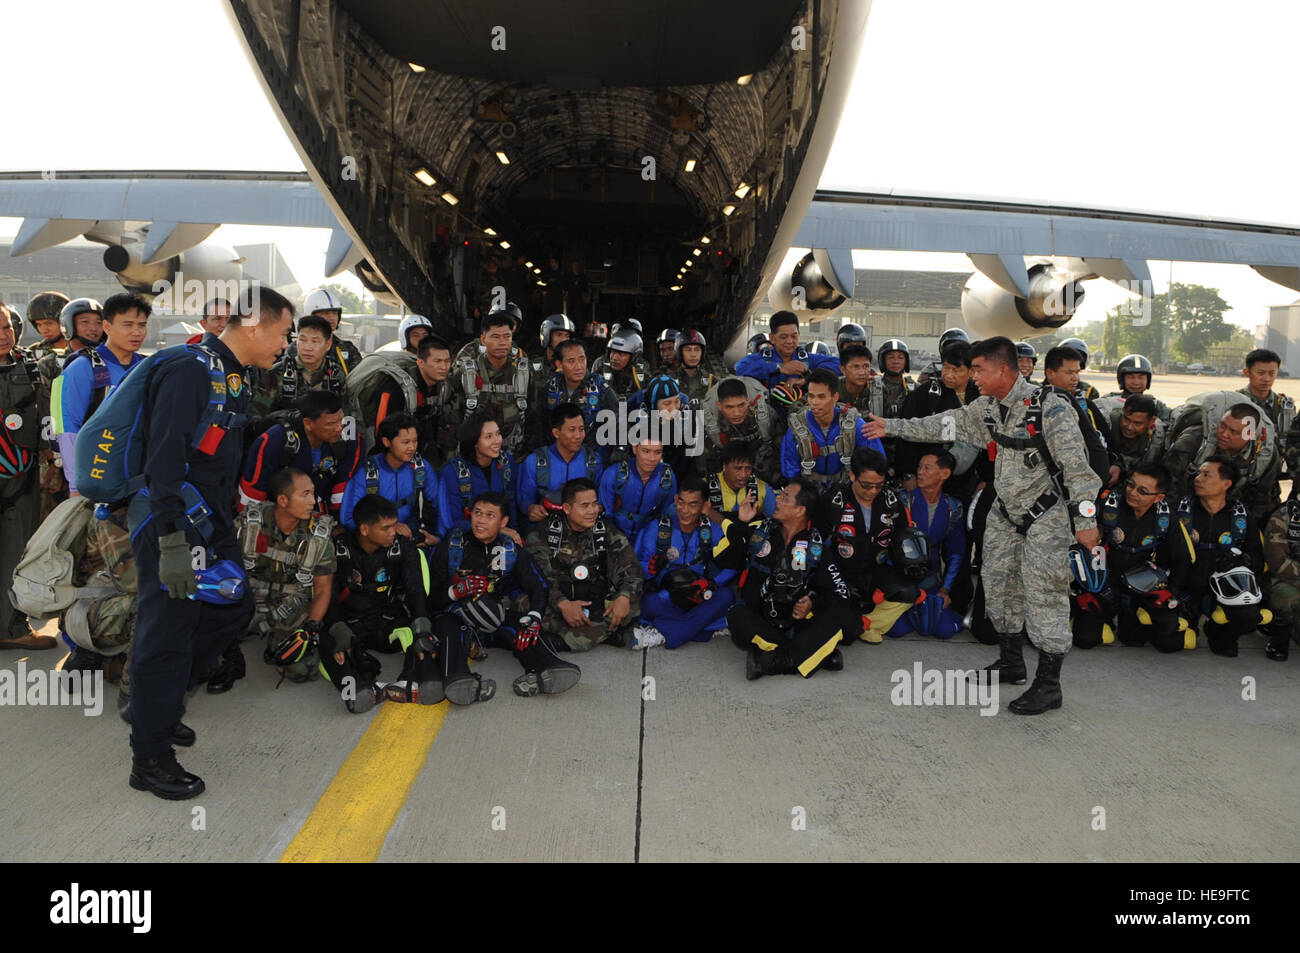 BANGKOK, Thailand  - Wing Commander Chaina Rong Pudehakarn speaks to his men of the Royal Thai Air Force Parachute Stock Photo